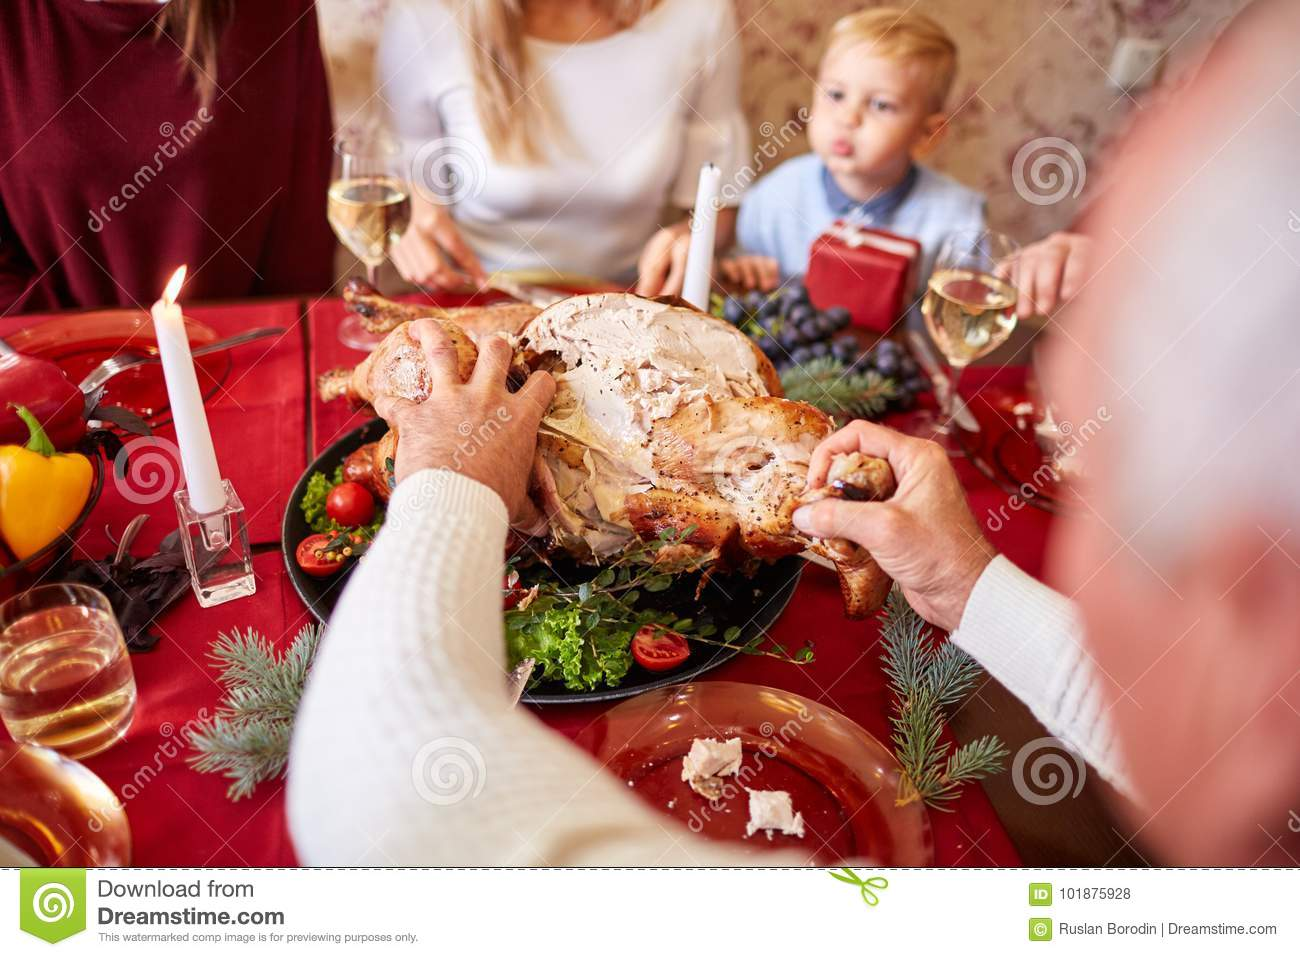 Family eating traditional Thanksgiving turkey on a festive table background. Roasted turkey. Family celebration concept.